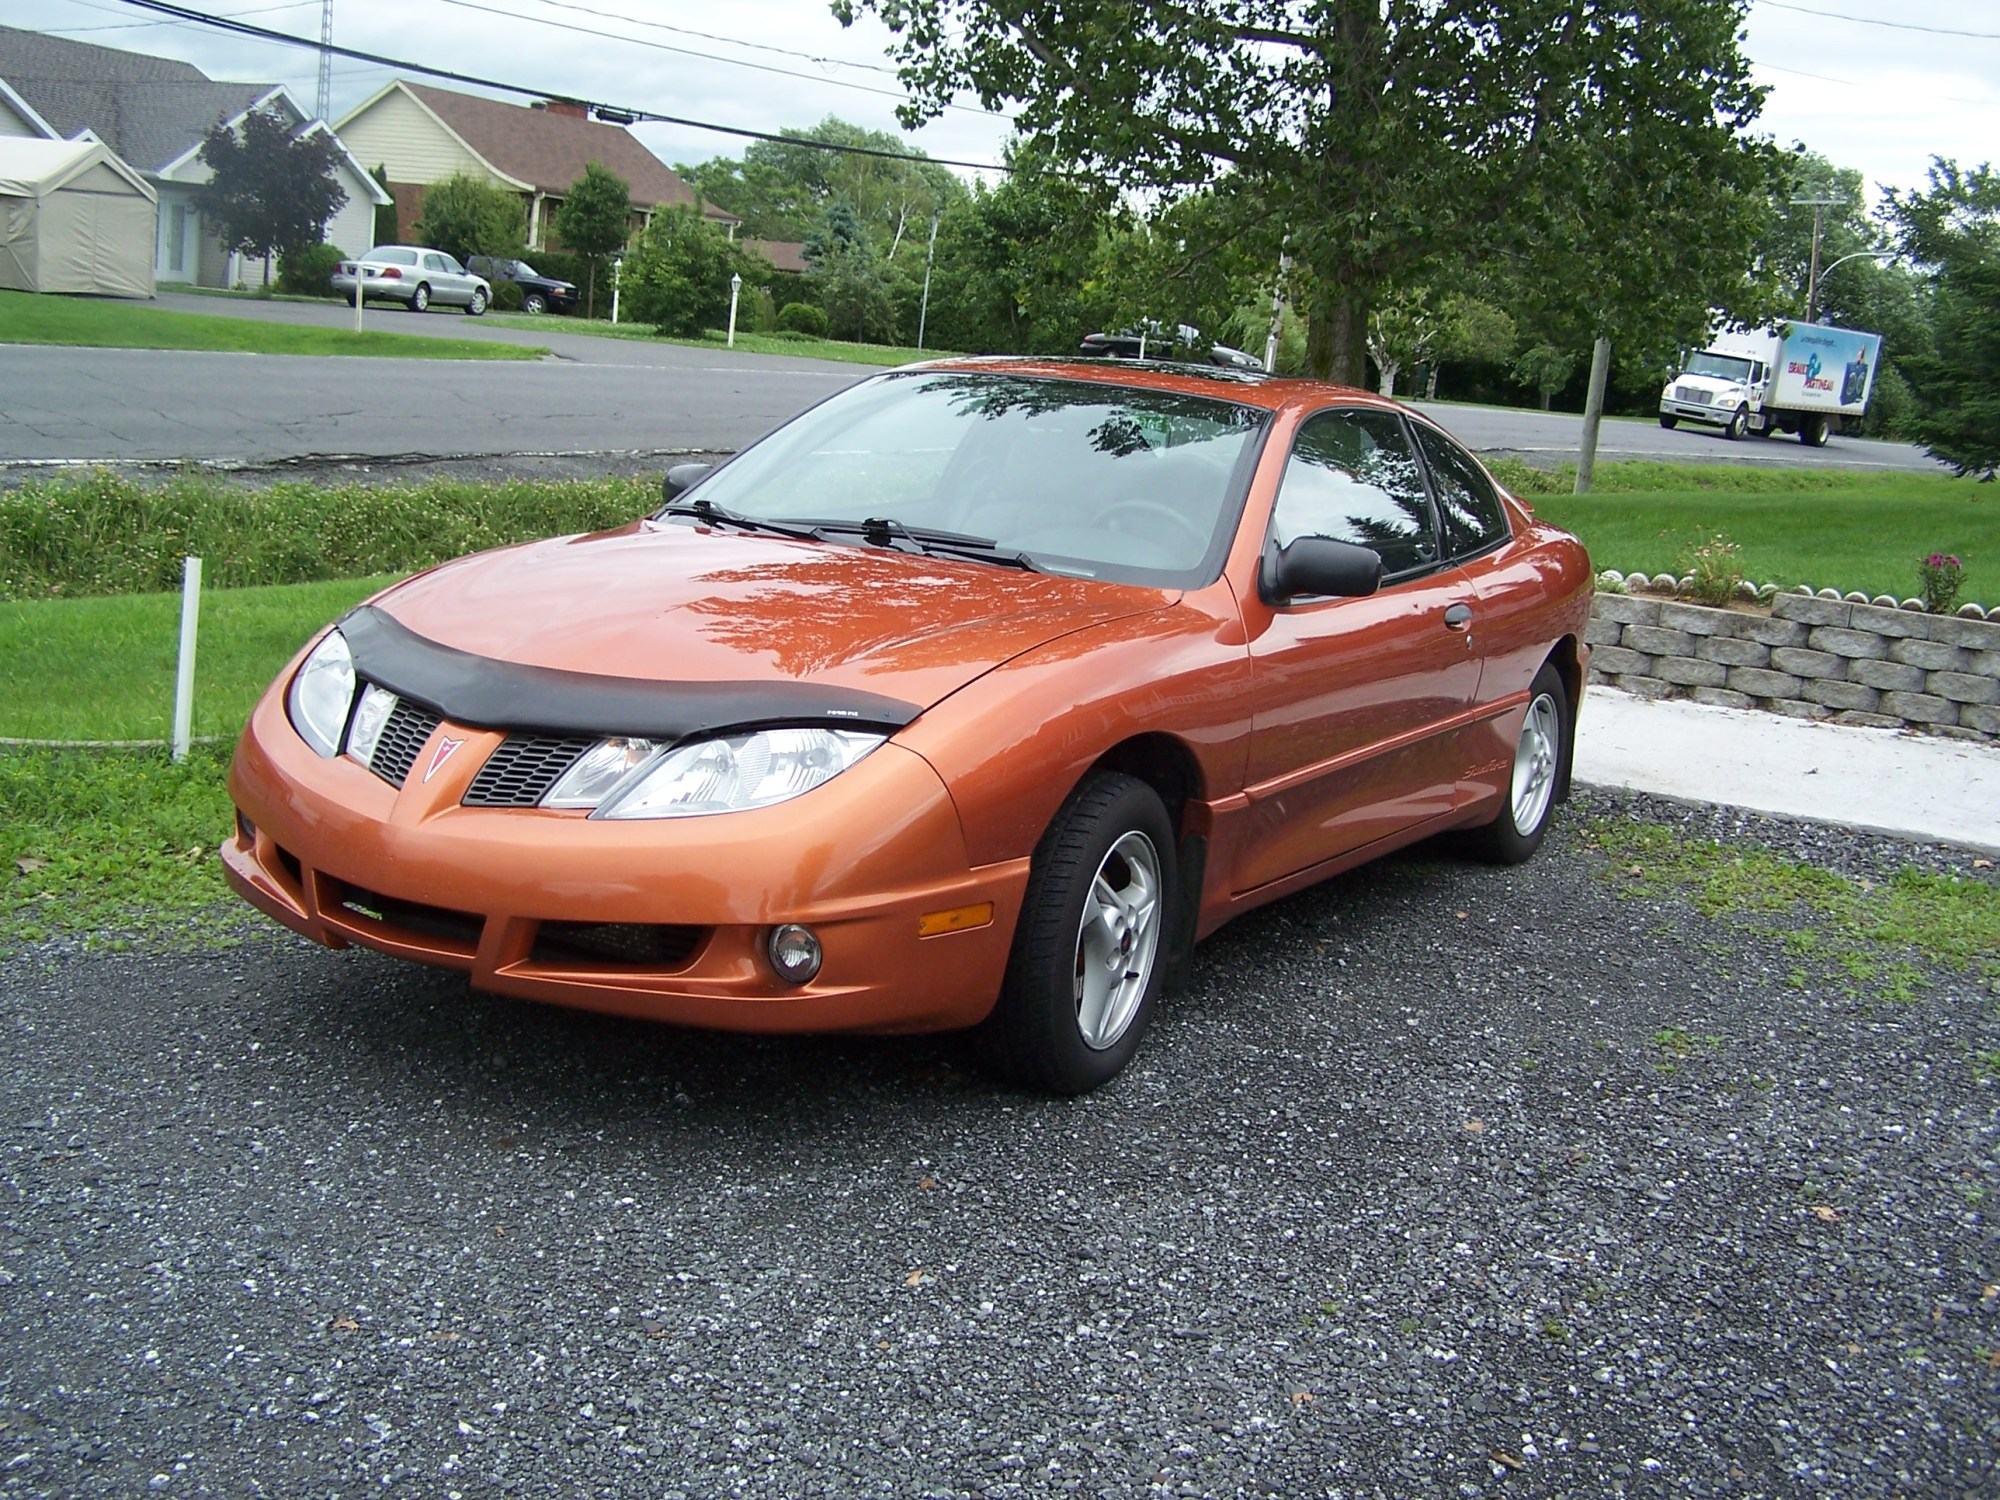 hight resolution of 2005 pontiac sunfire 14 pontiac sunfire 14